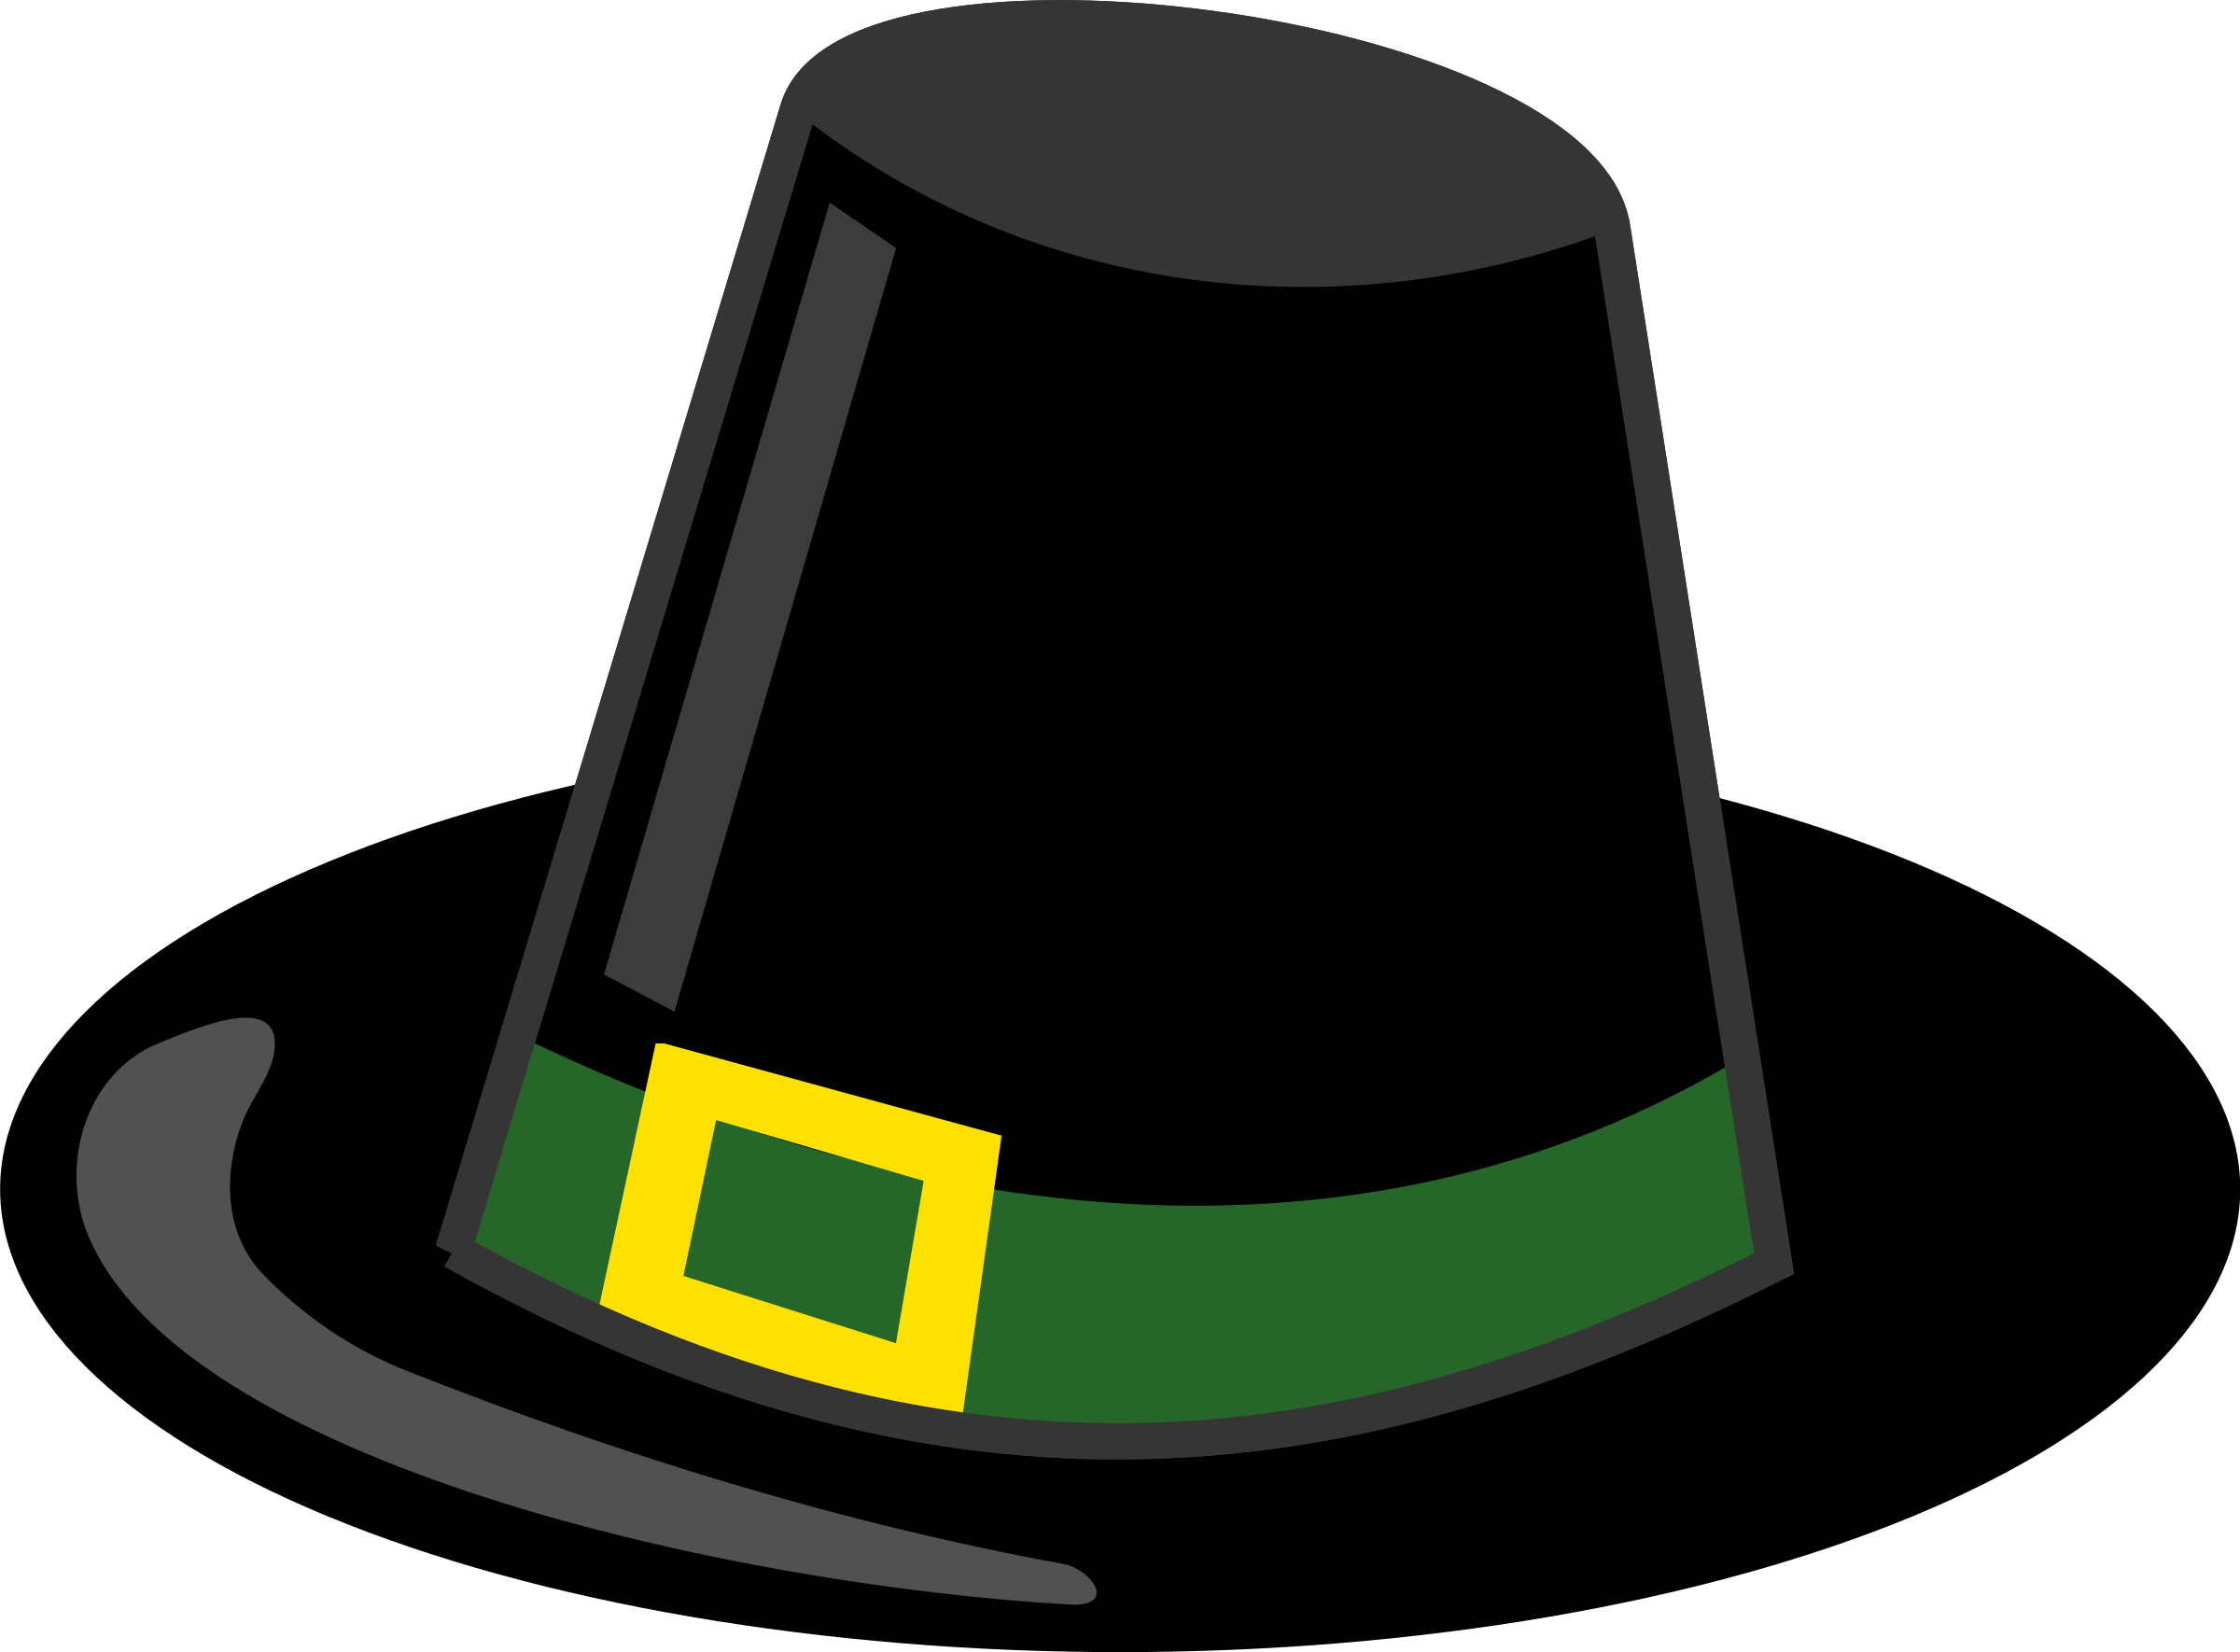 Pilgrim hat by laobc